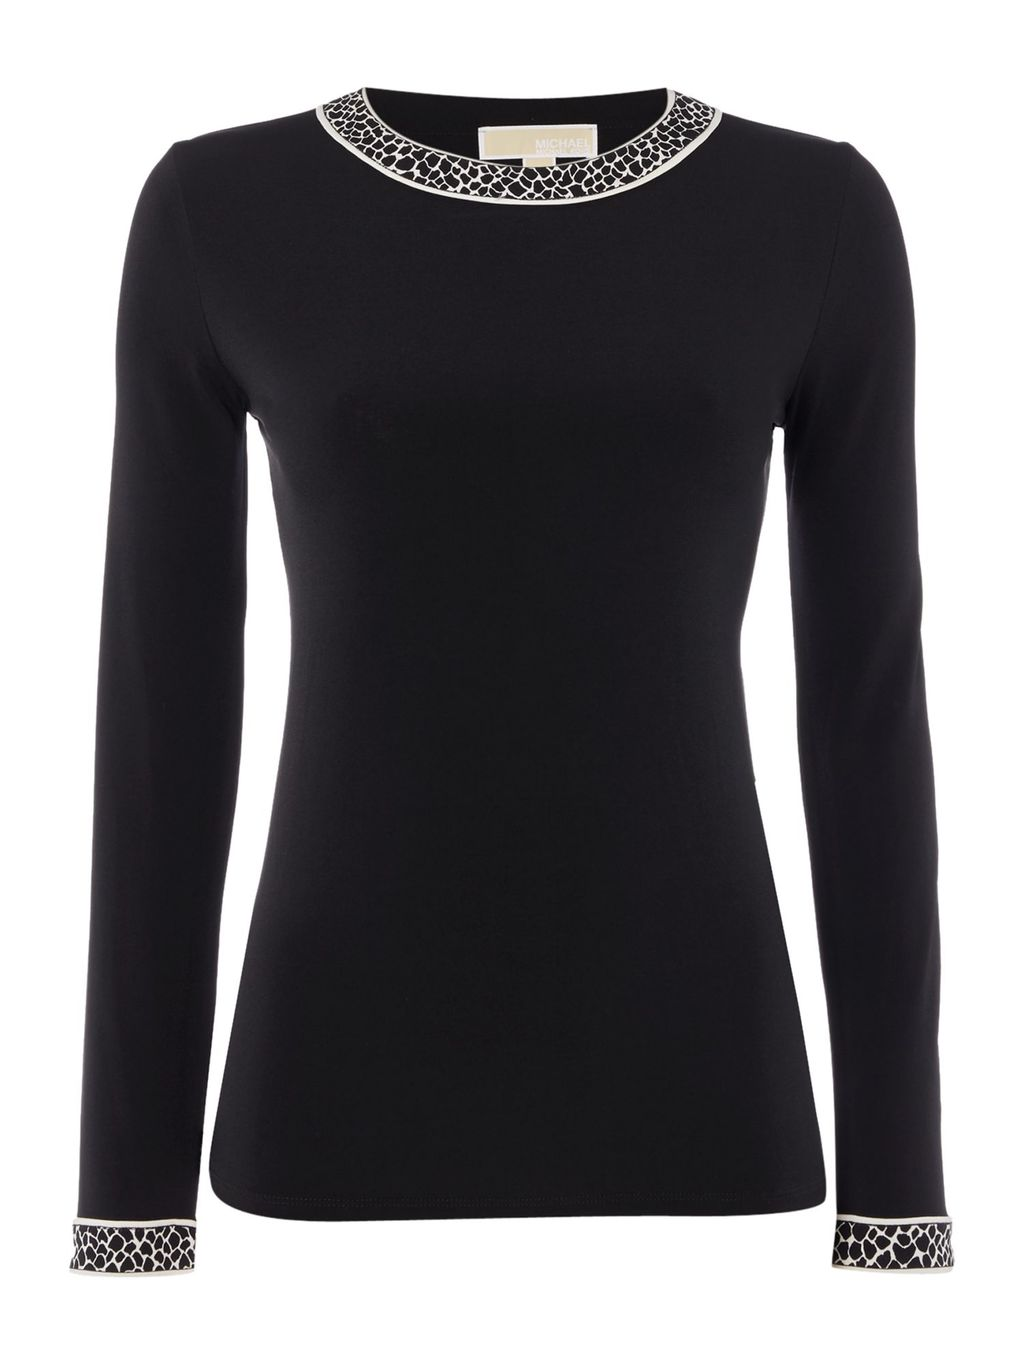 Long Sleeve Crewneck Top, Black - pattern: plain; bust detail: ruching/gathering/draping/layers/pintuck pleats at bust; occasions: casual; length: standard; style: top; fibres: polyester/polyamide - stretch; fit: body skimming; neckline: crew; sleeve length: long sleeve; sleeve style: standard; texture group: jersey - clingy; pattern type: fabric; predominant colour: dusky pink; embellishment: jewels/stone; season: a/w 2016; wardrobe: highlight